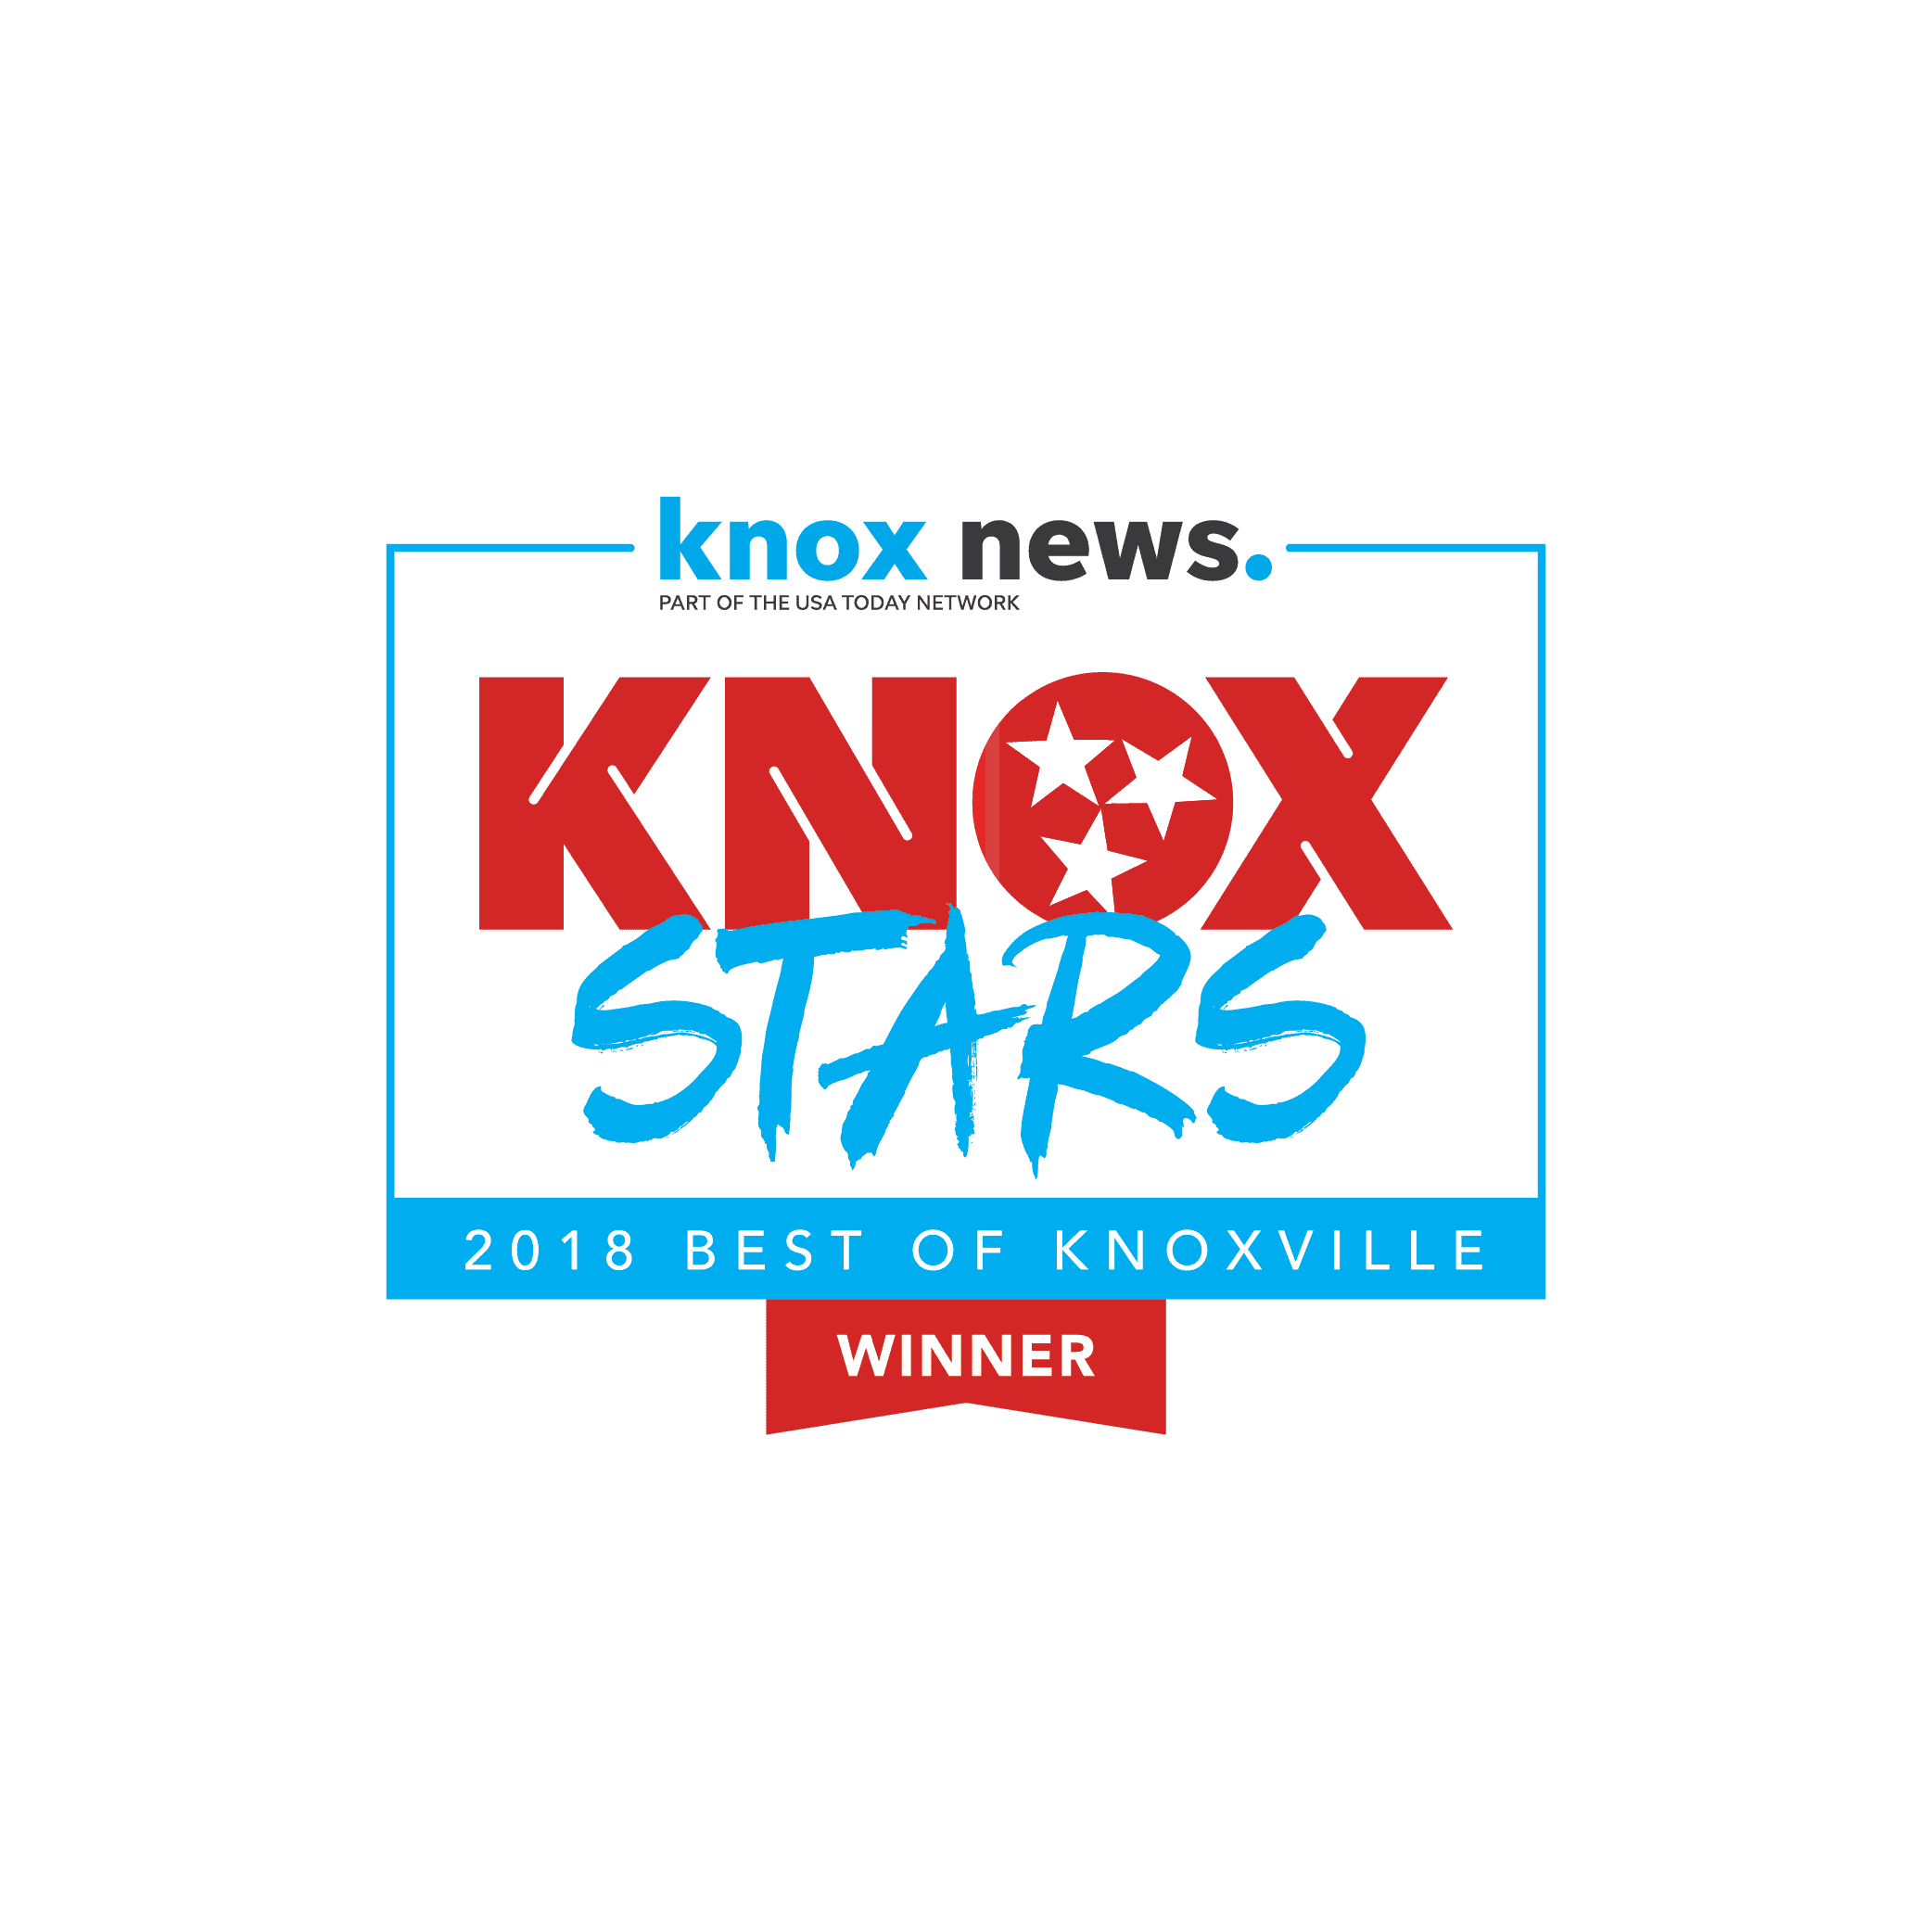 Best of Knoxville WINNER 2018